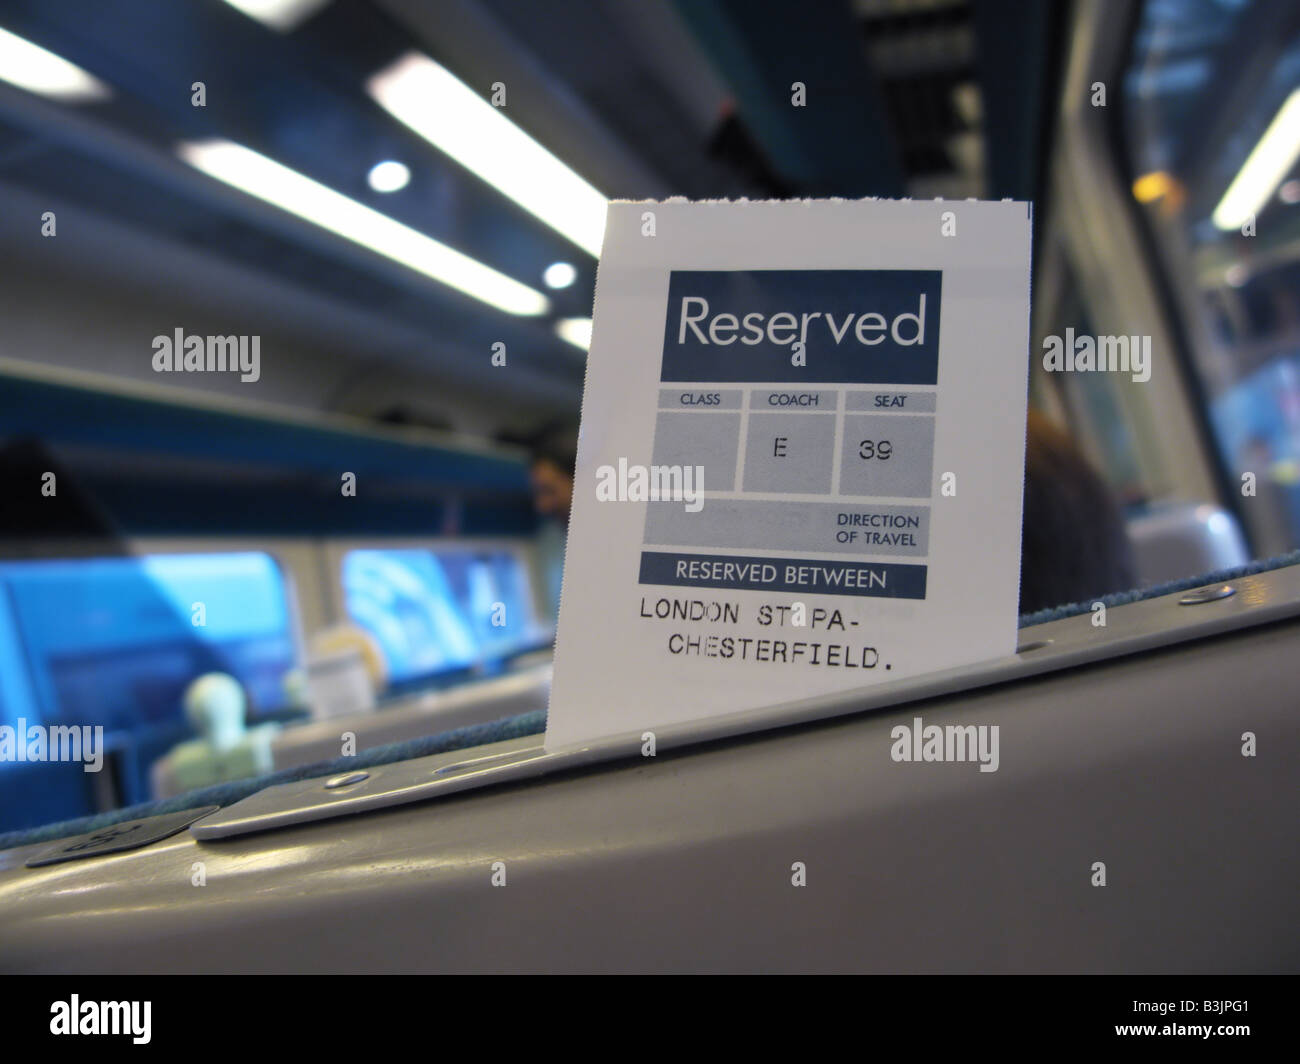 Reserved seat on train - Stock Image